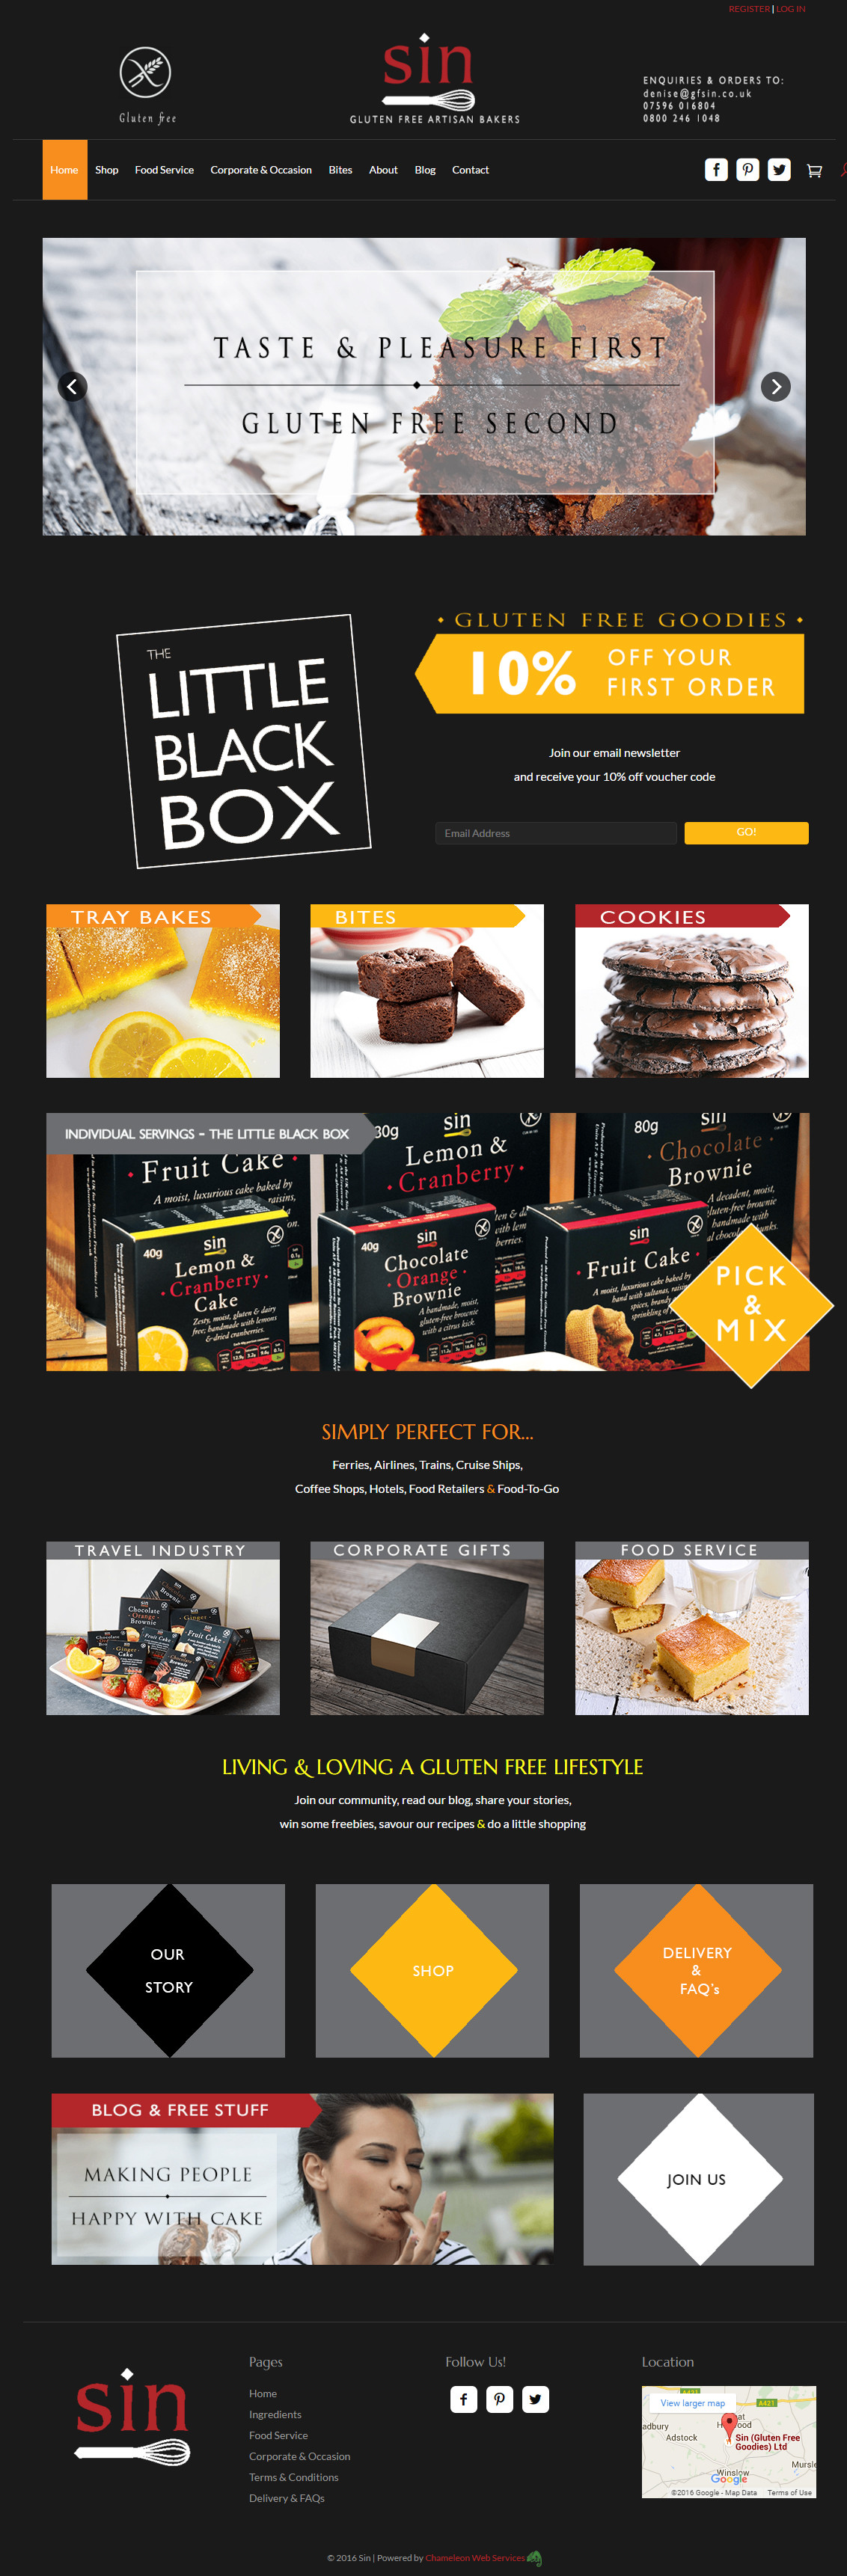 gluten free goodies website